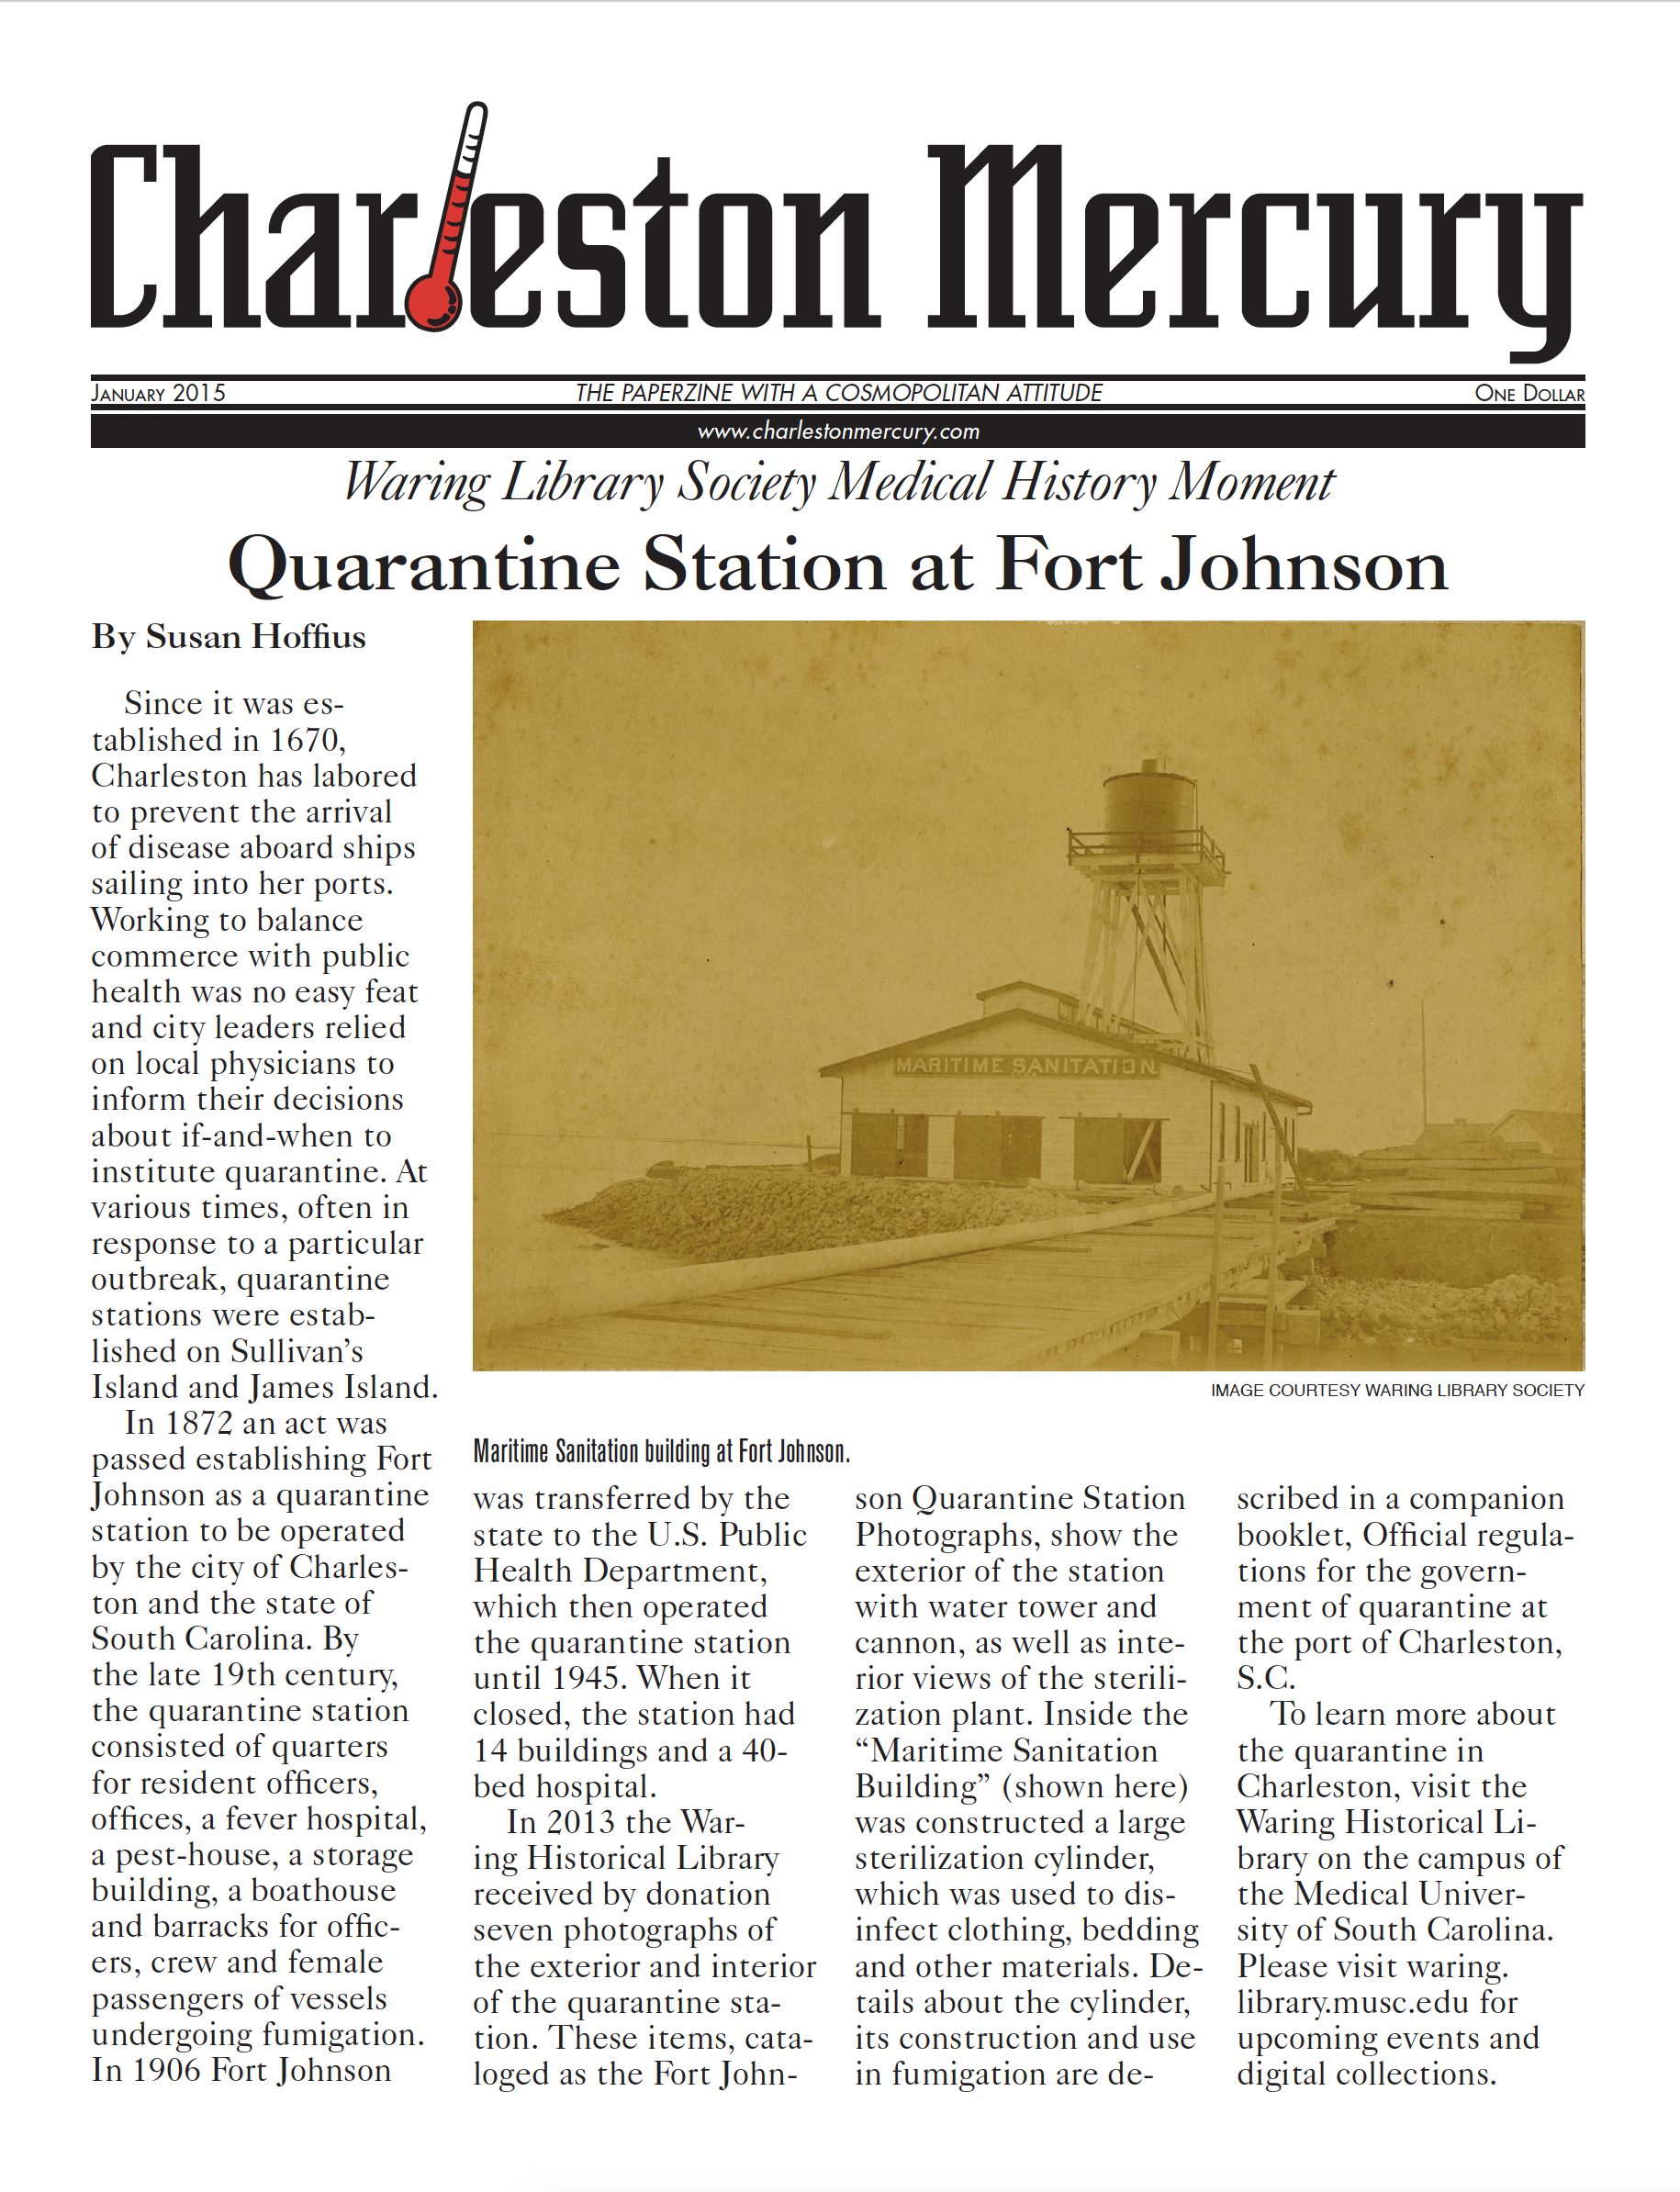 Charleston Mercury, January 2015